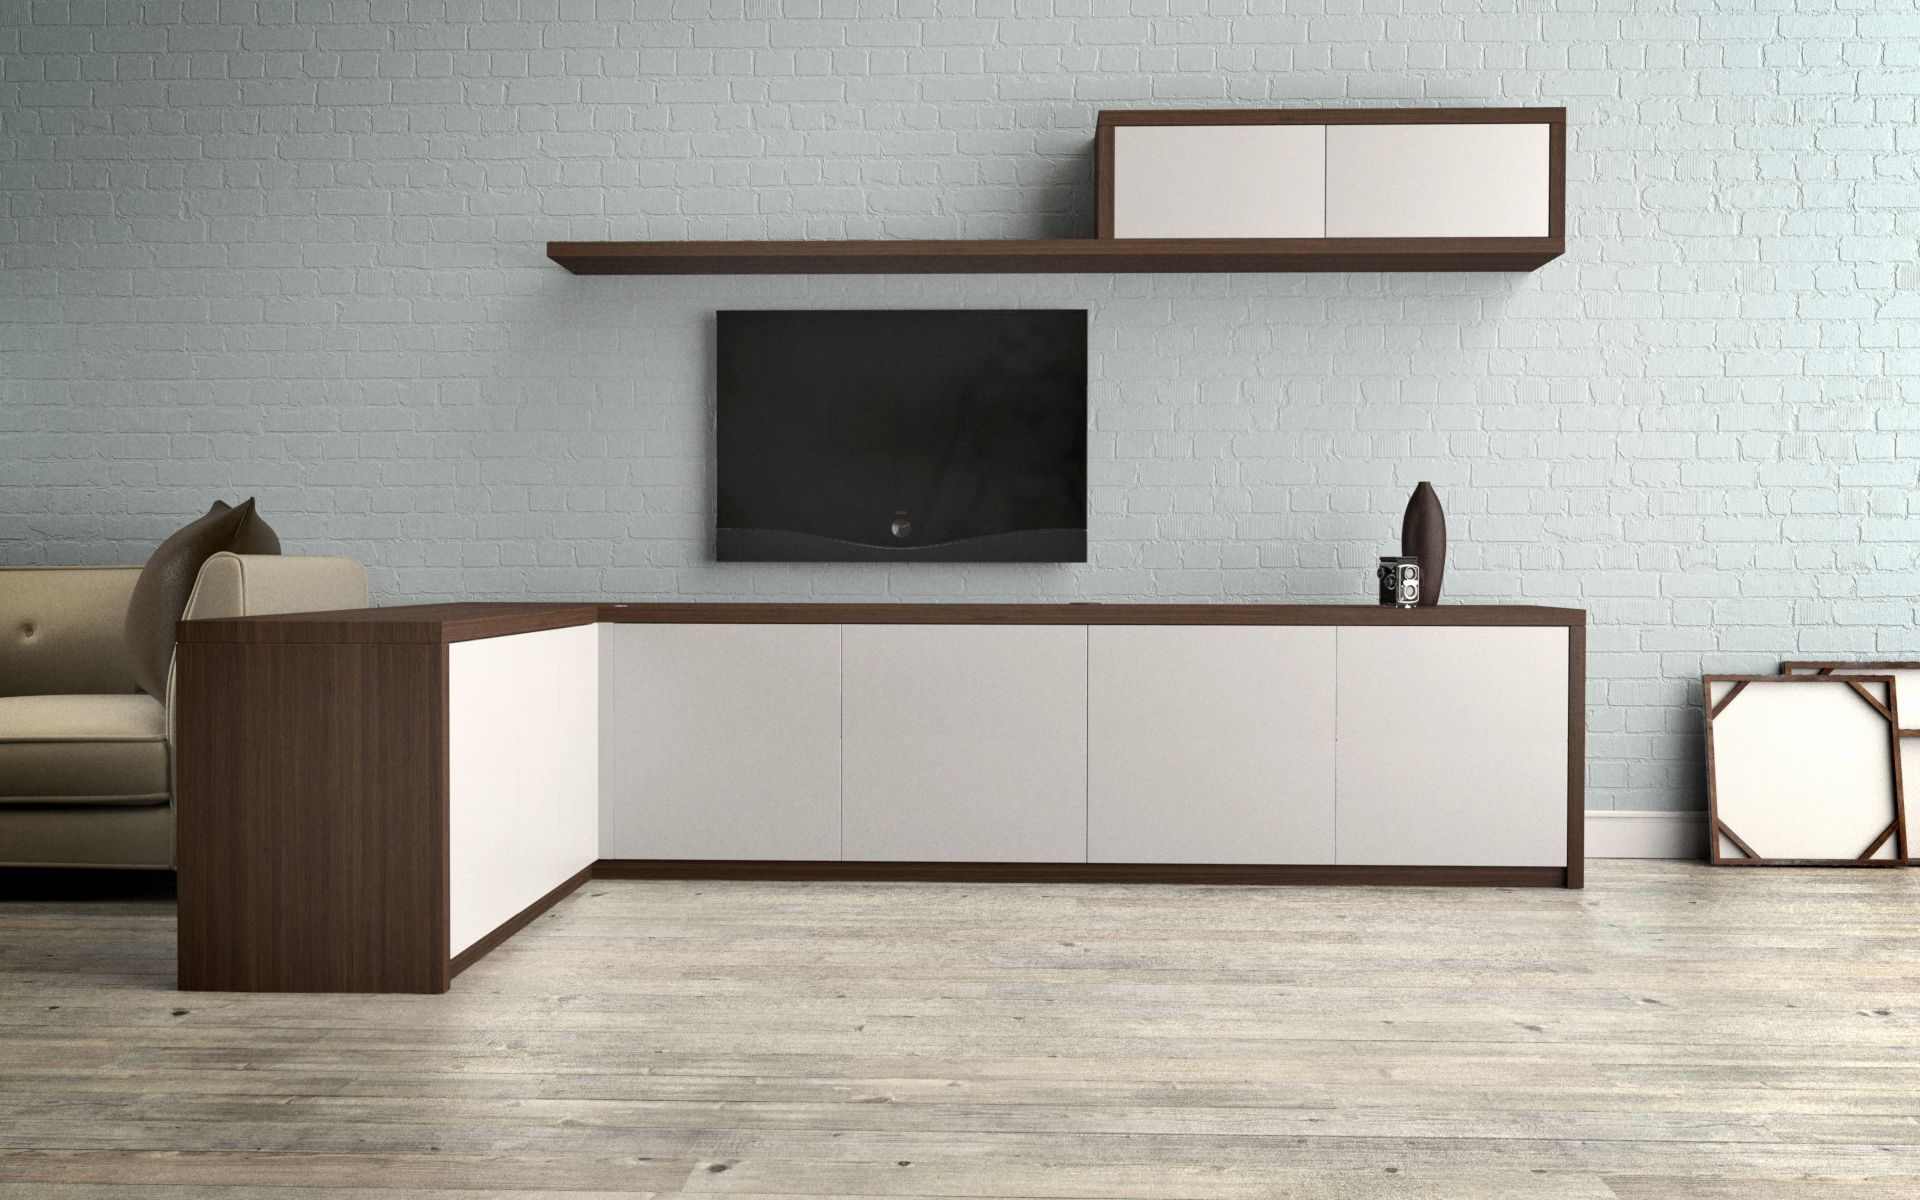 L Shaped Sideboard Cabinet With Shelving Above Wood